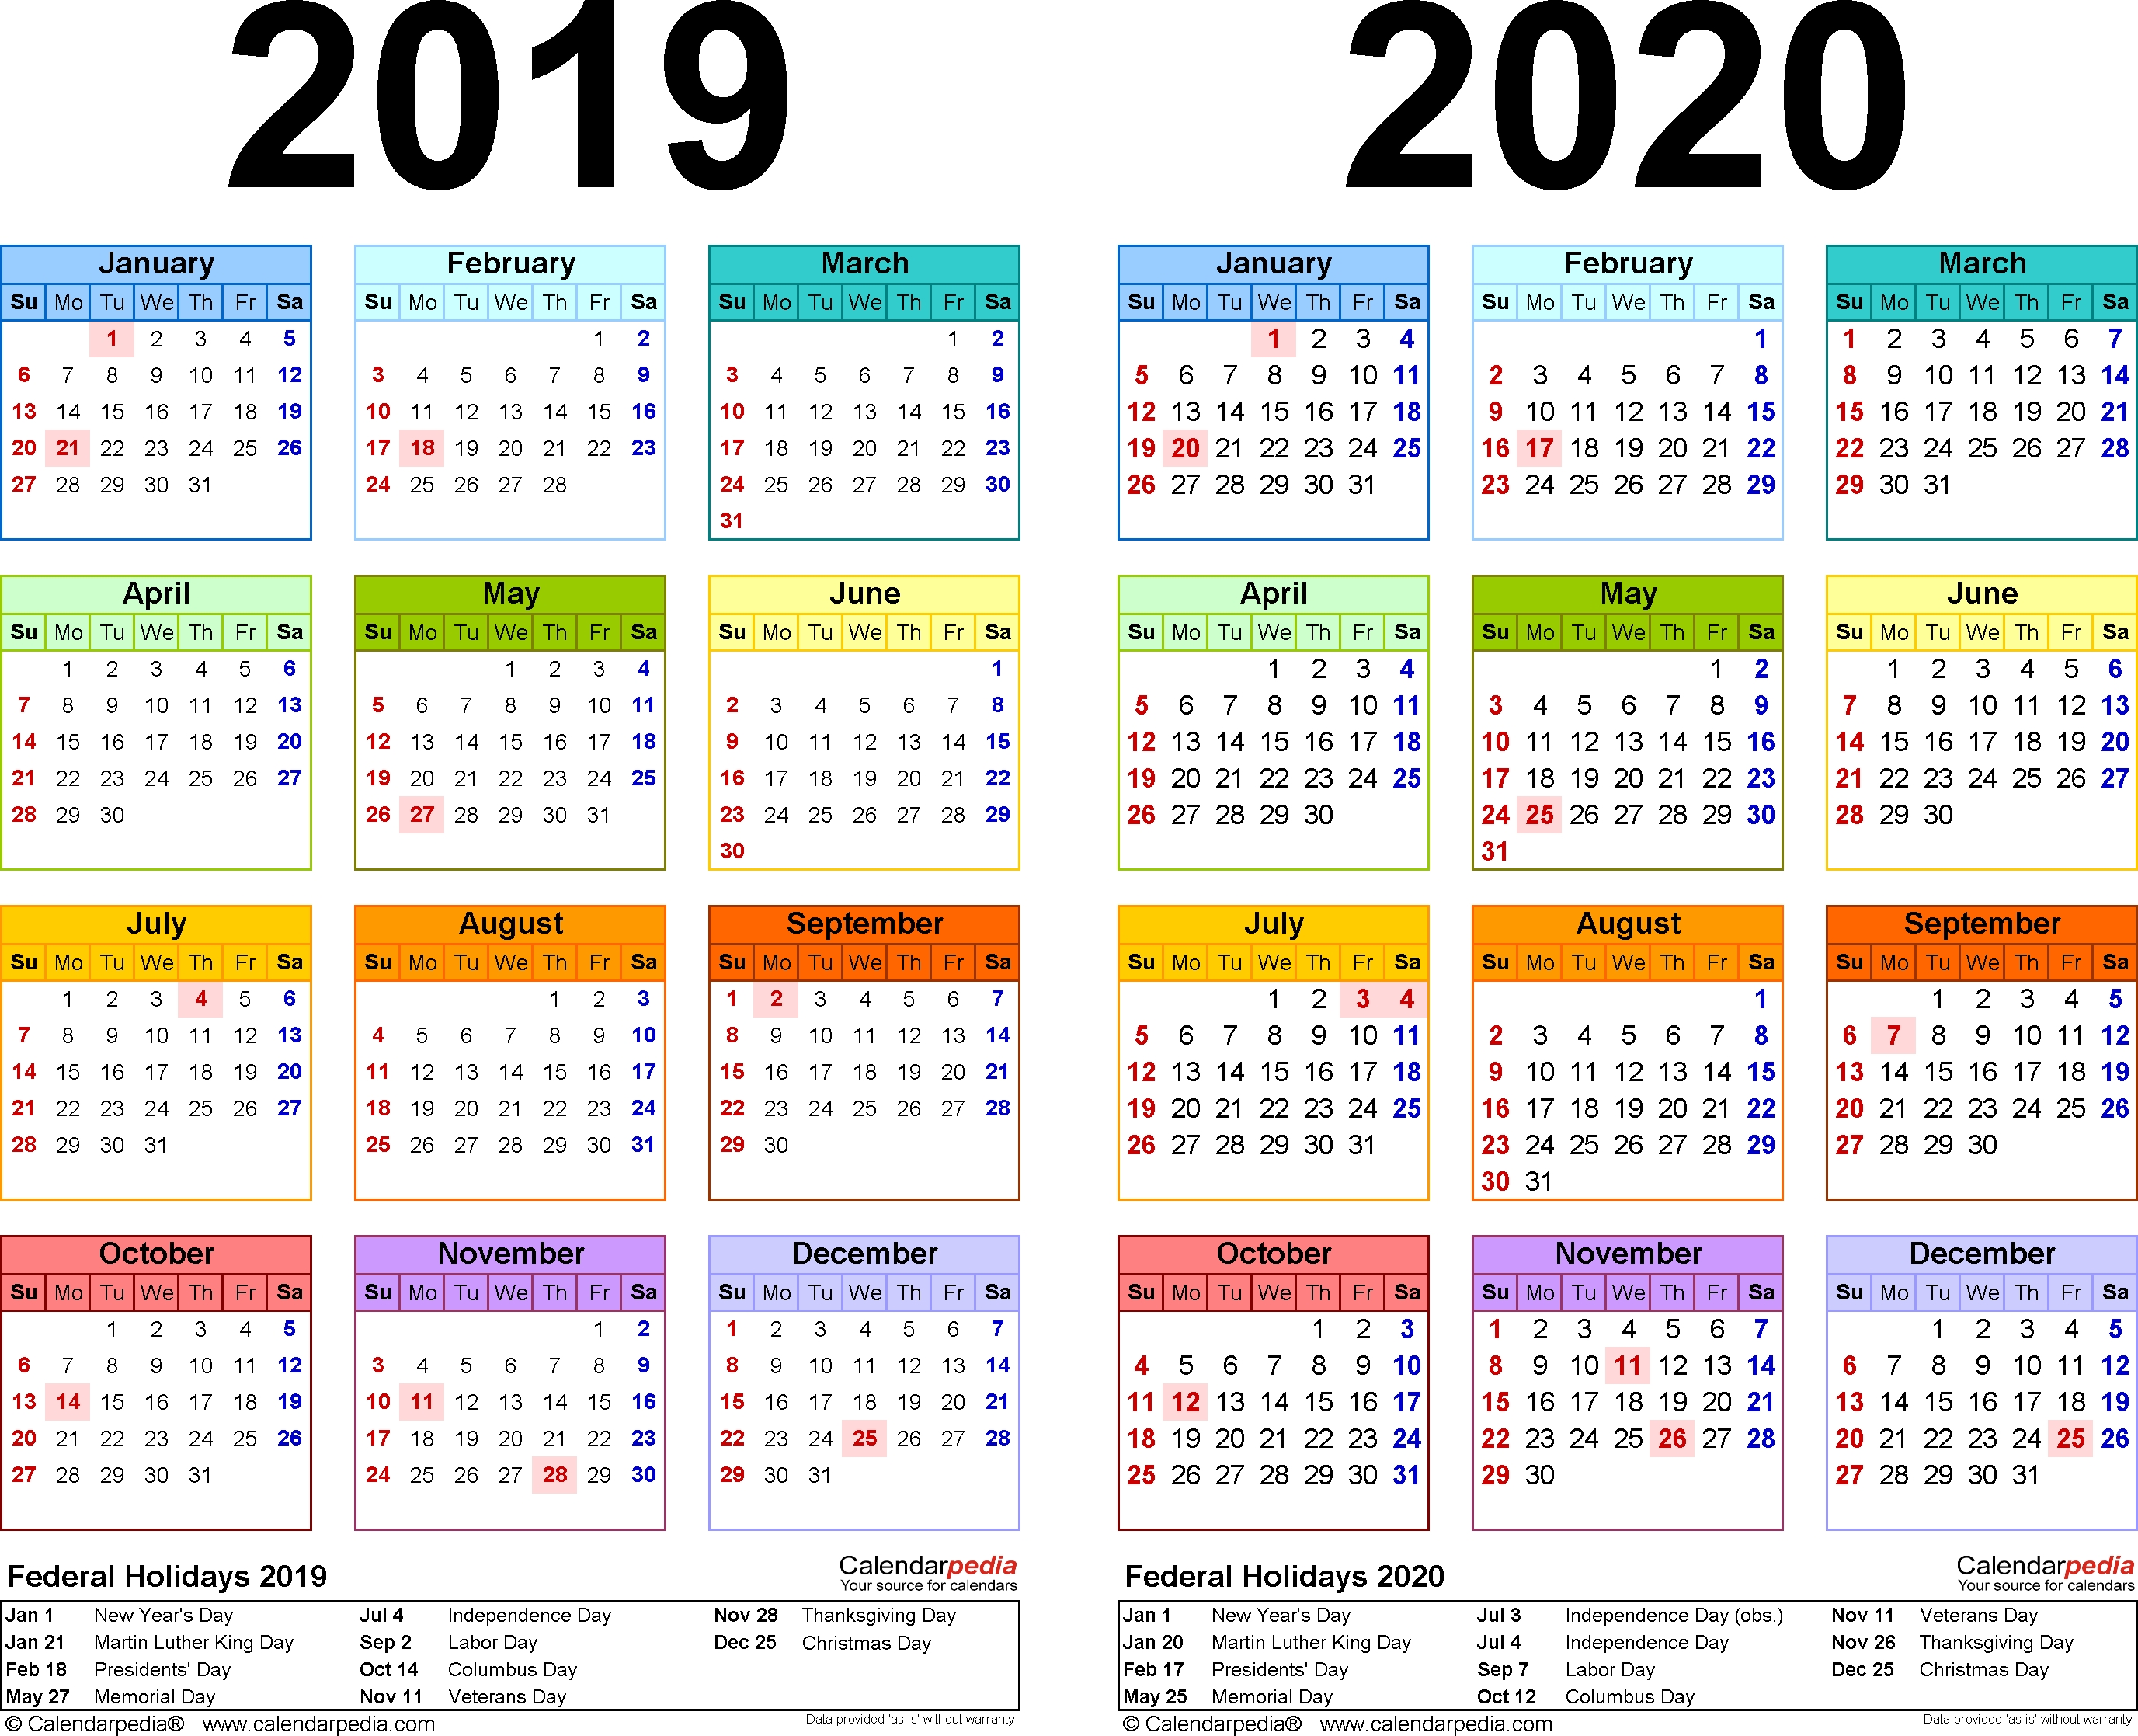 2019-2020 Calendar - Free Printable Two-Year Word Calendars within 2019-2020 Fill In Calendar